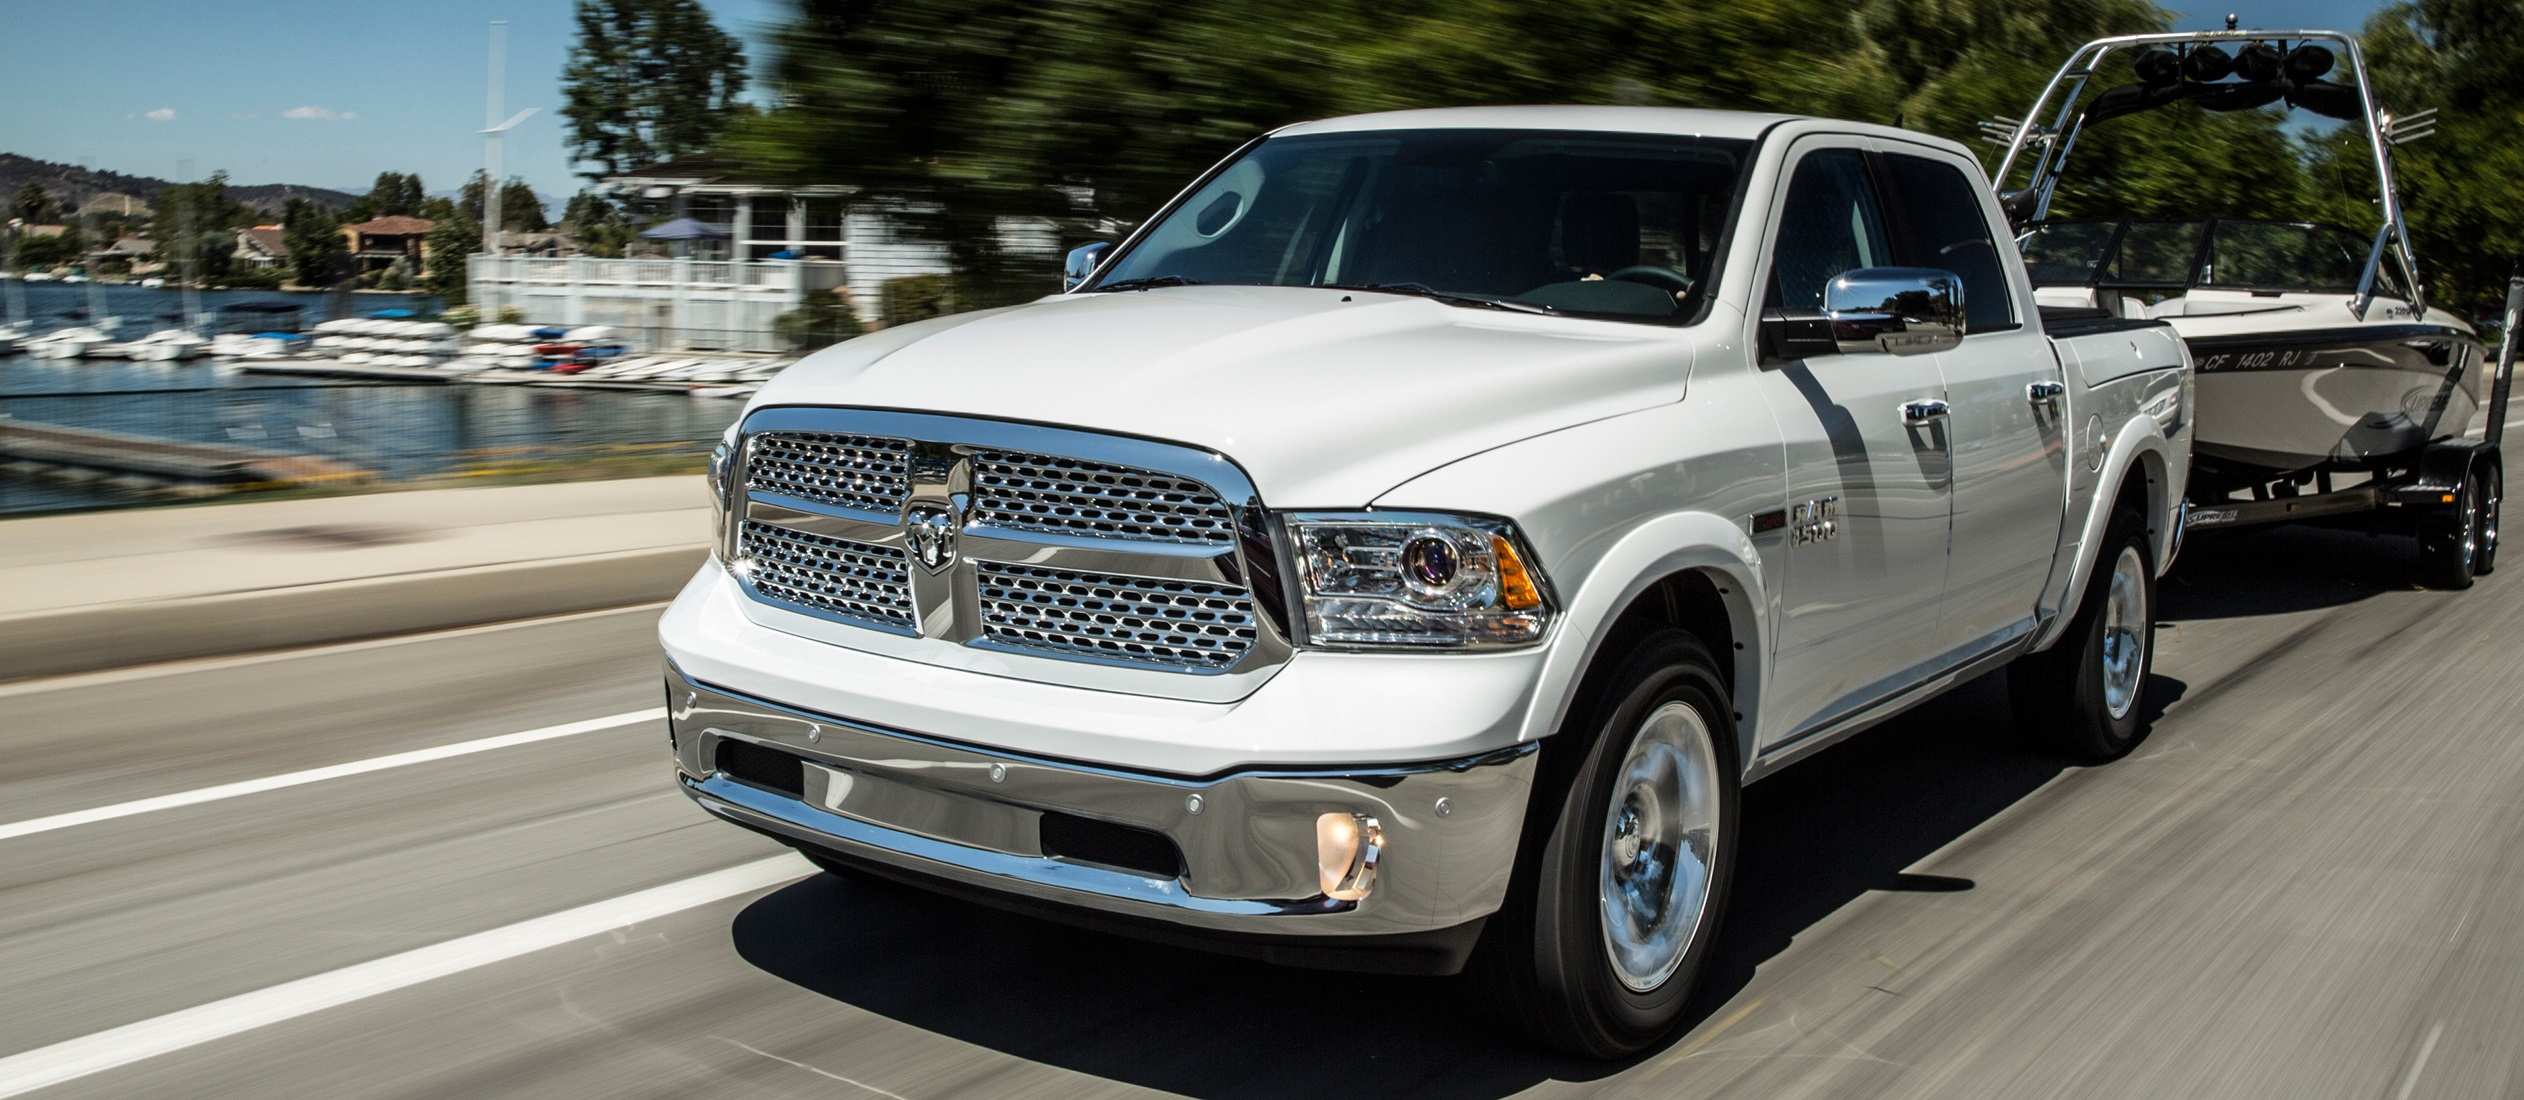 Ram 1500 Towing Capacity >> Ram 1500 And Towing Capacity Differences Aventura Chrysler